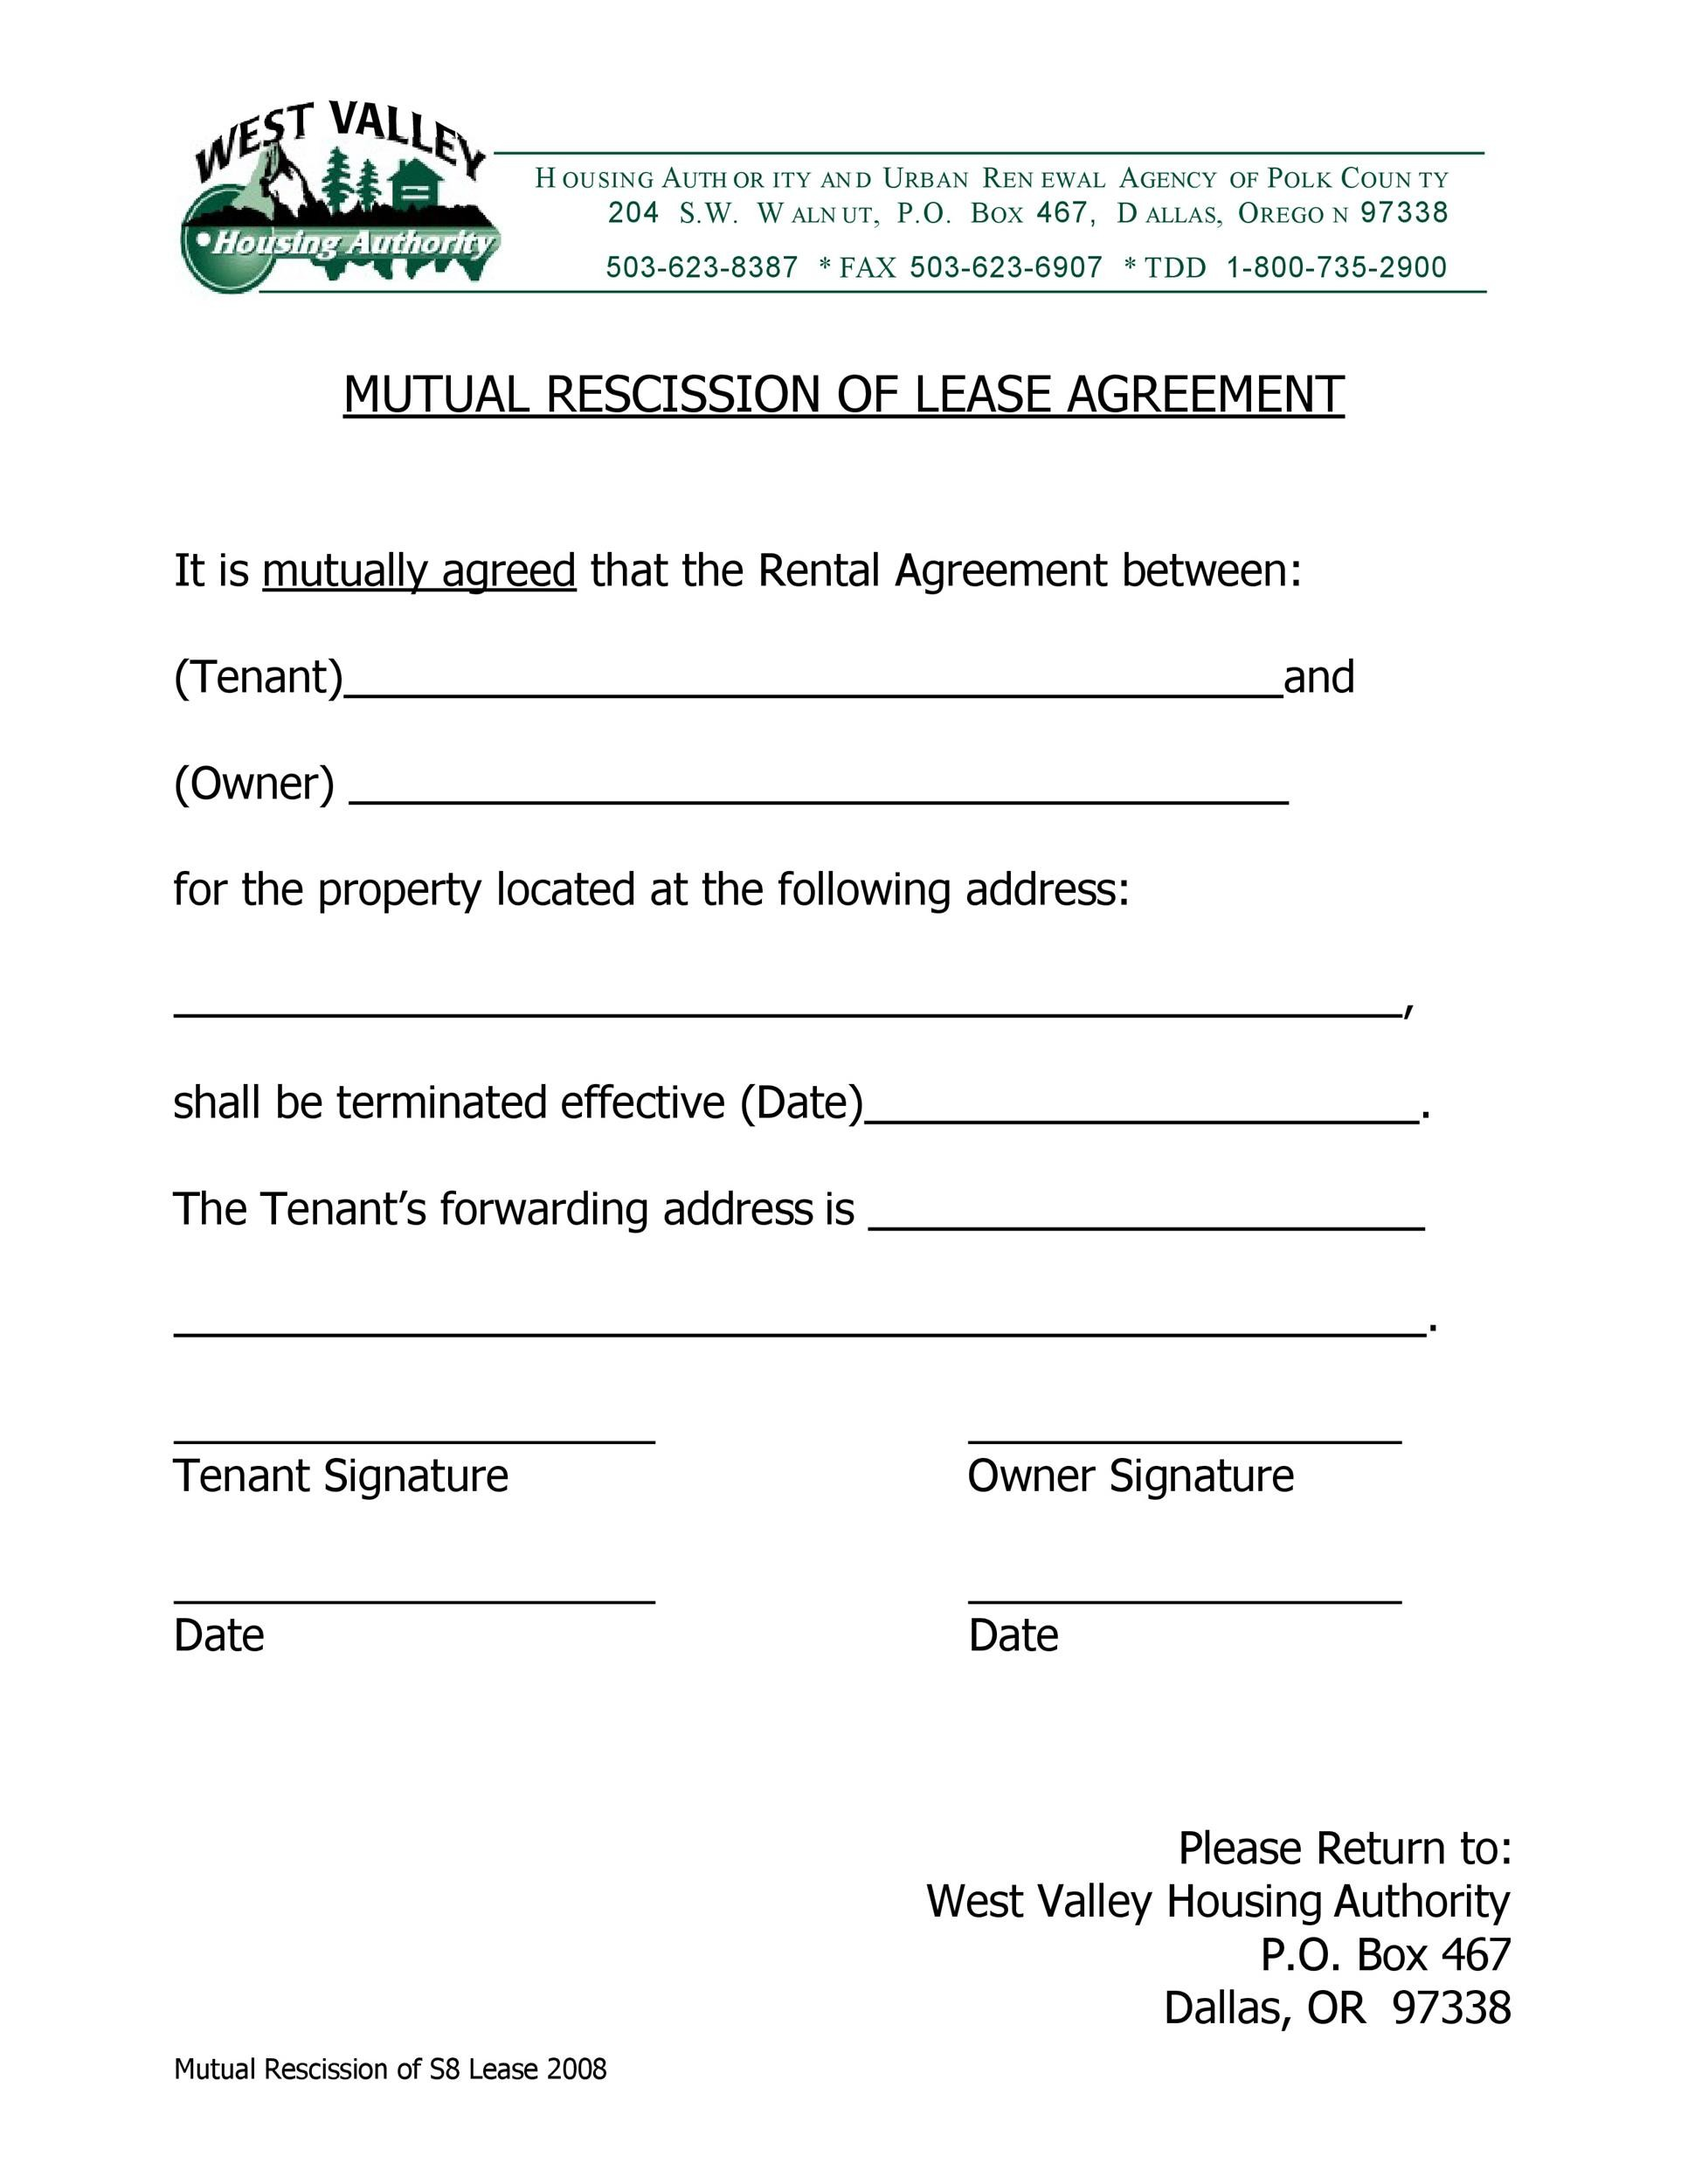 Free rescission agreement 37